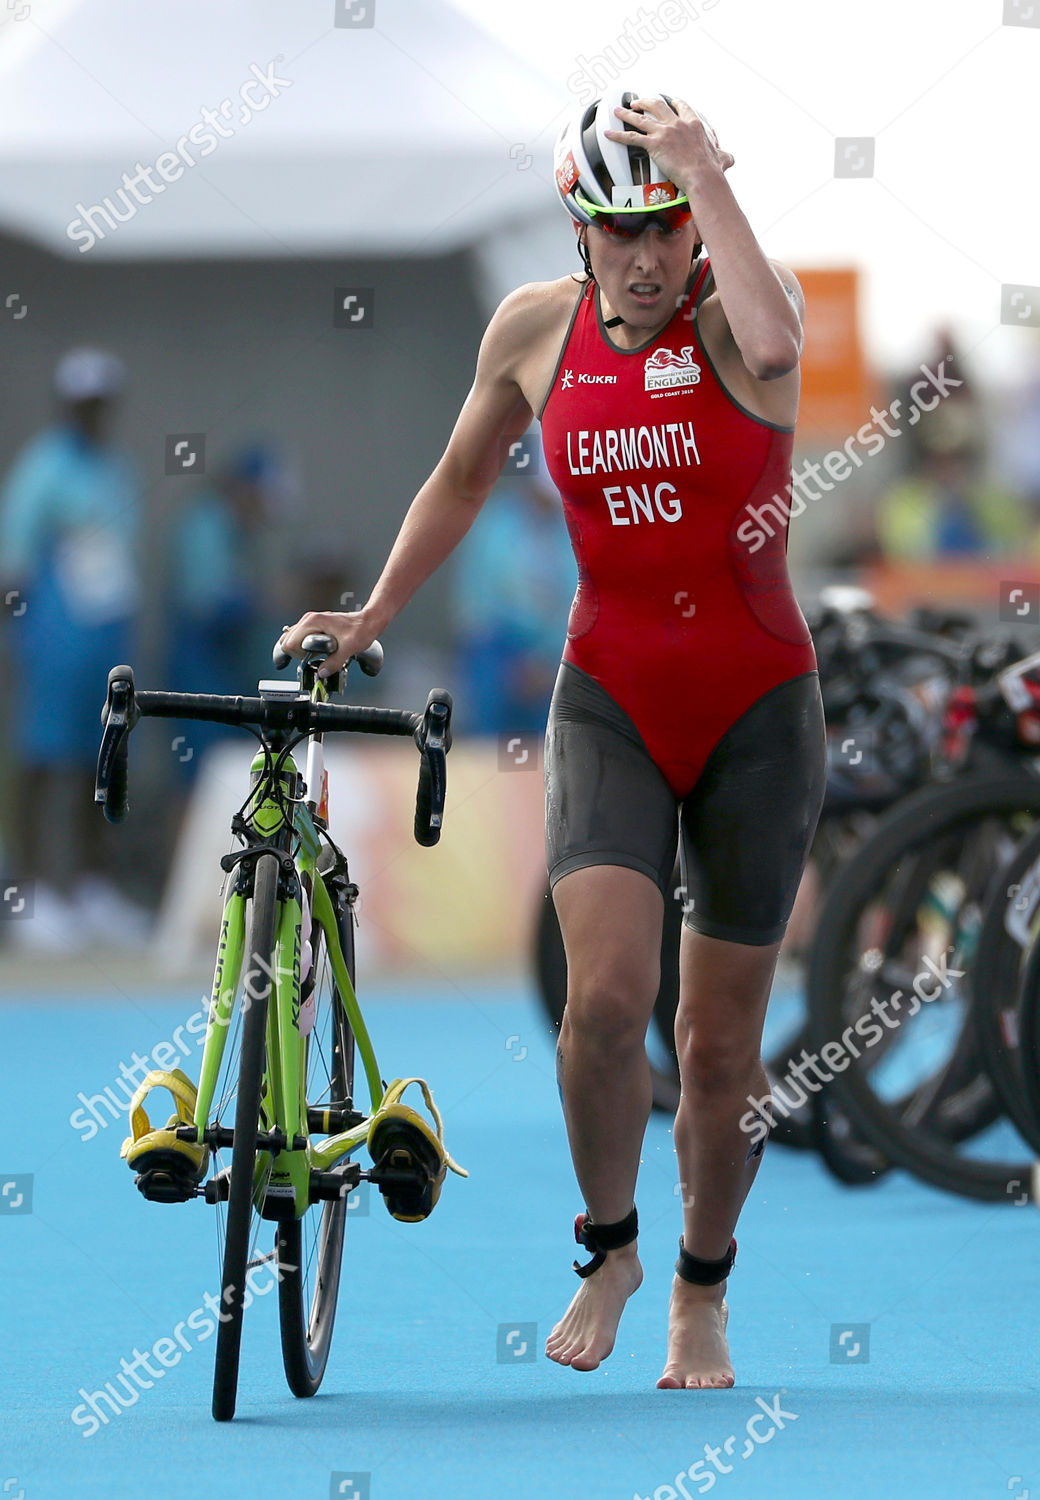 Jessica Learmonth England runs her bicycle during Editorial